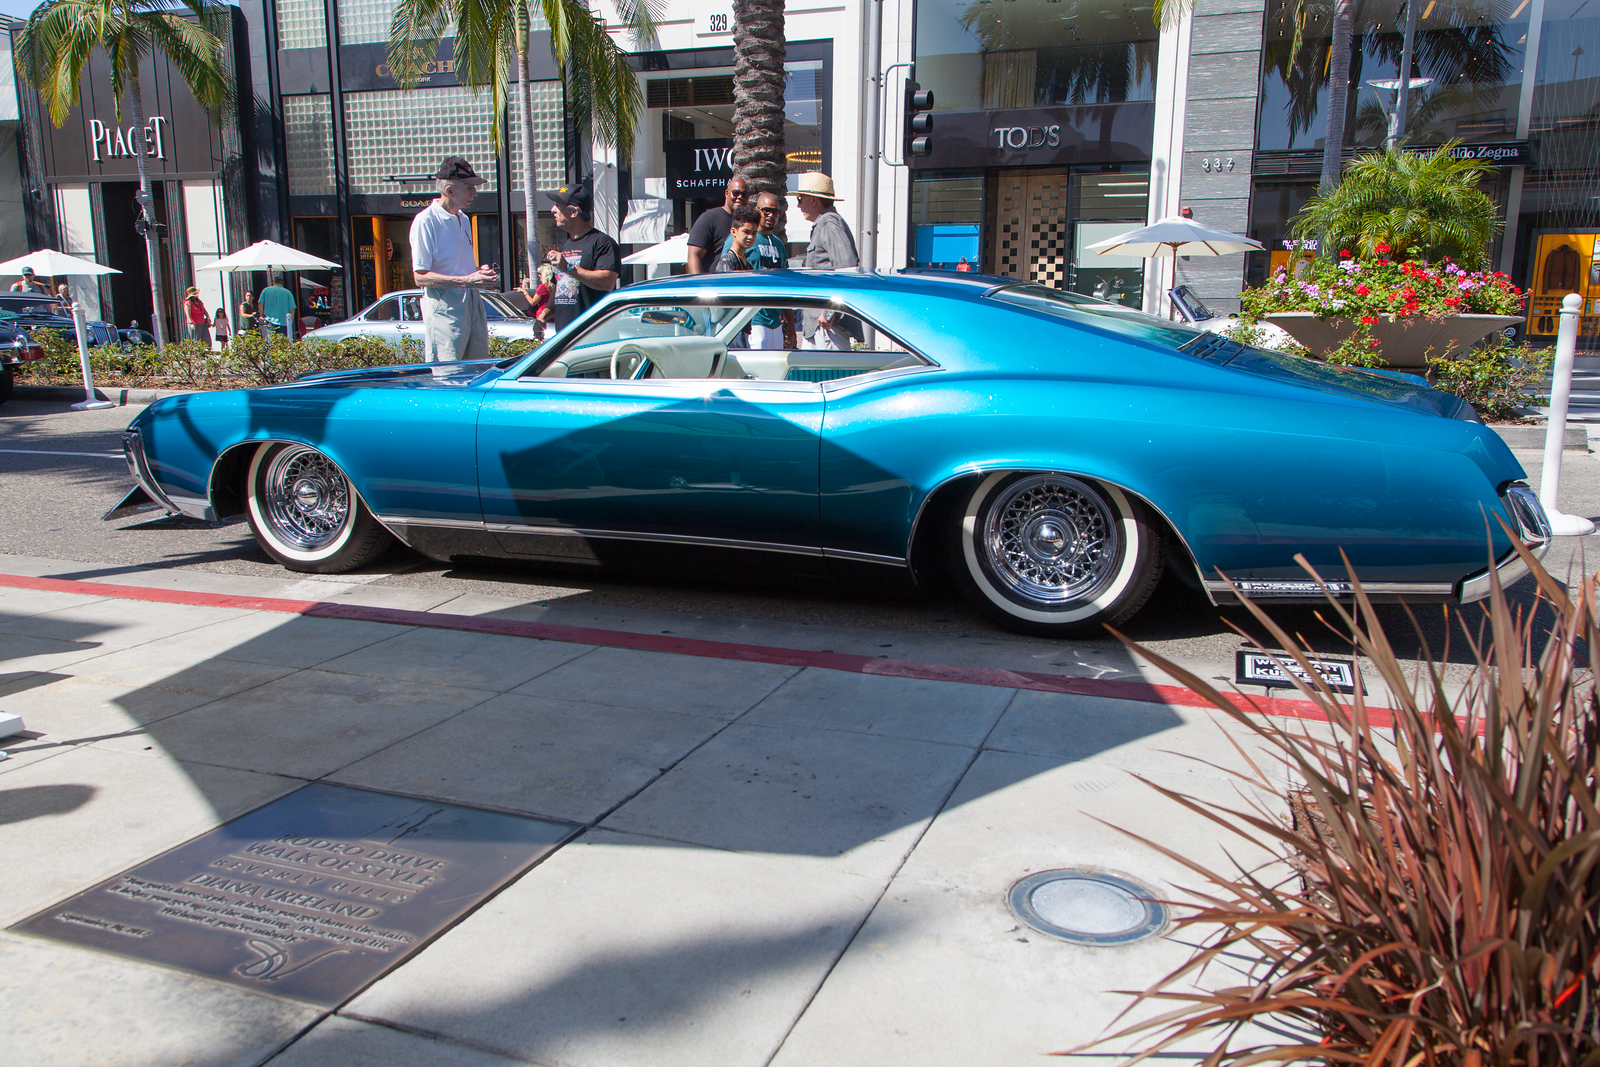 1968 Buick Riviera Custom, owned by John D'Agostino